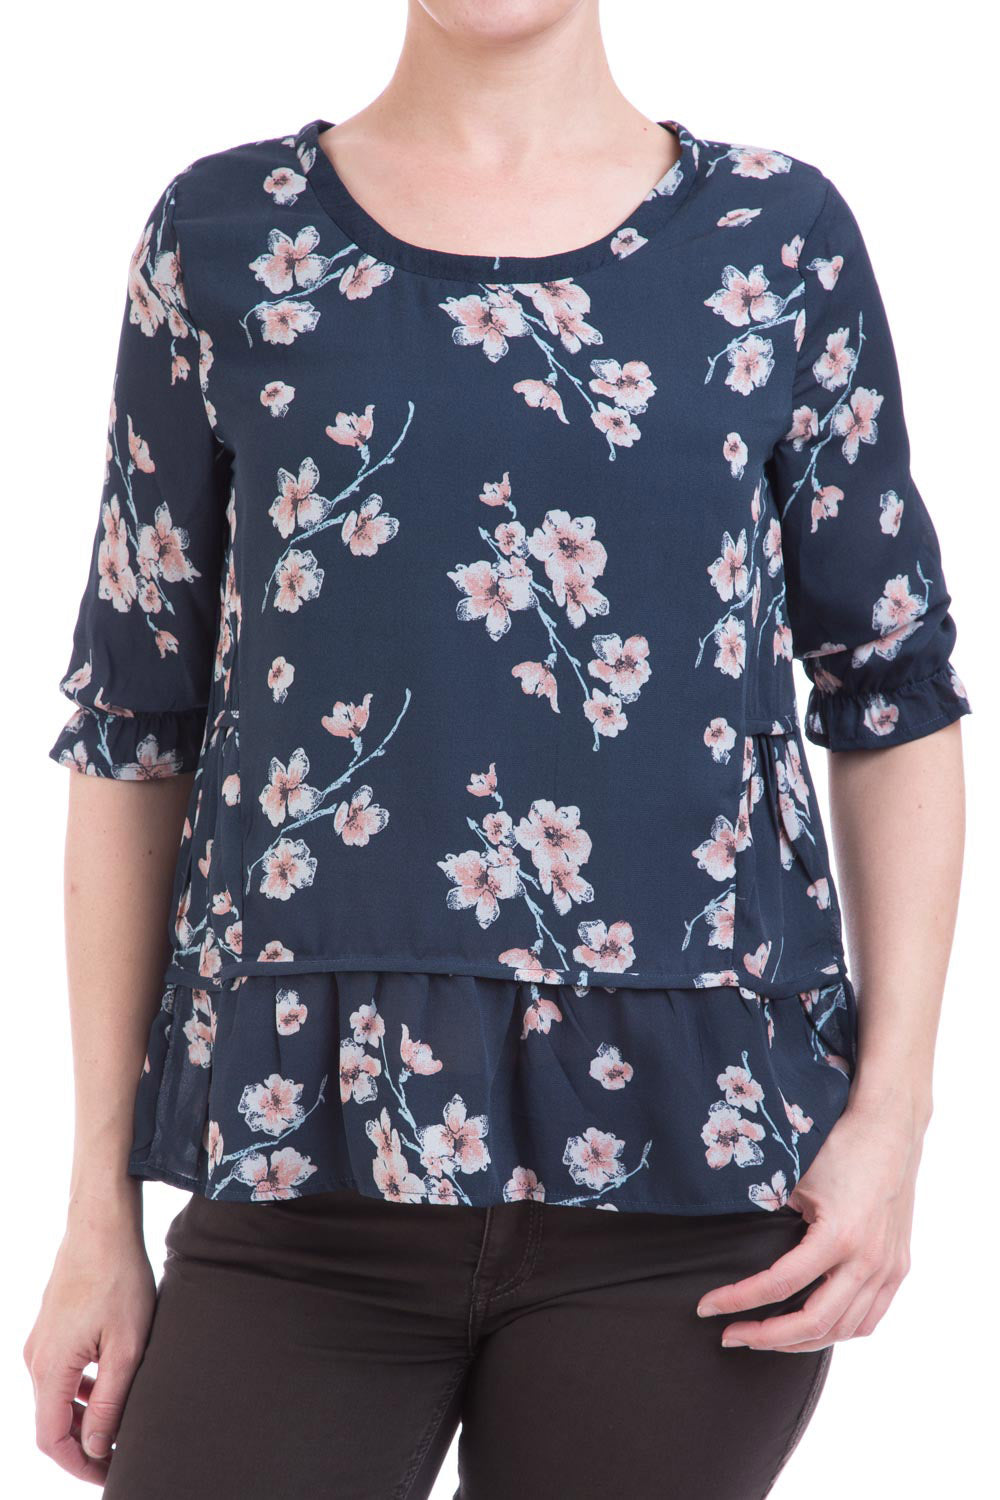 Type 2 Delicate Blossom Top